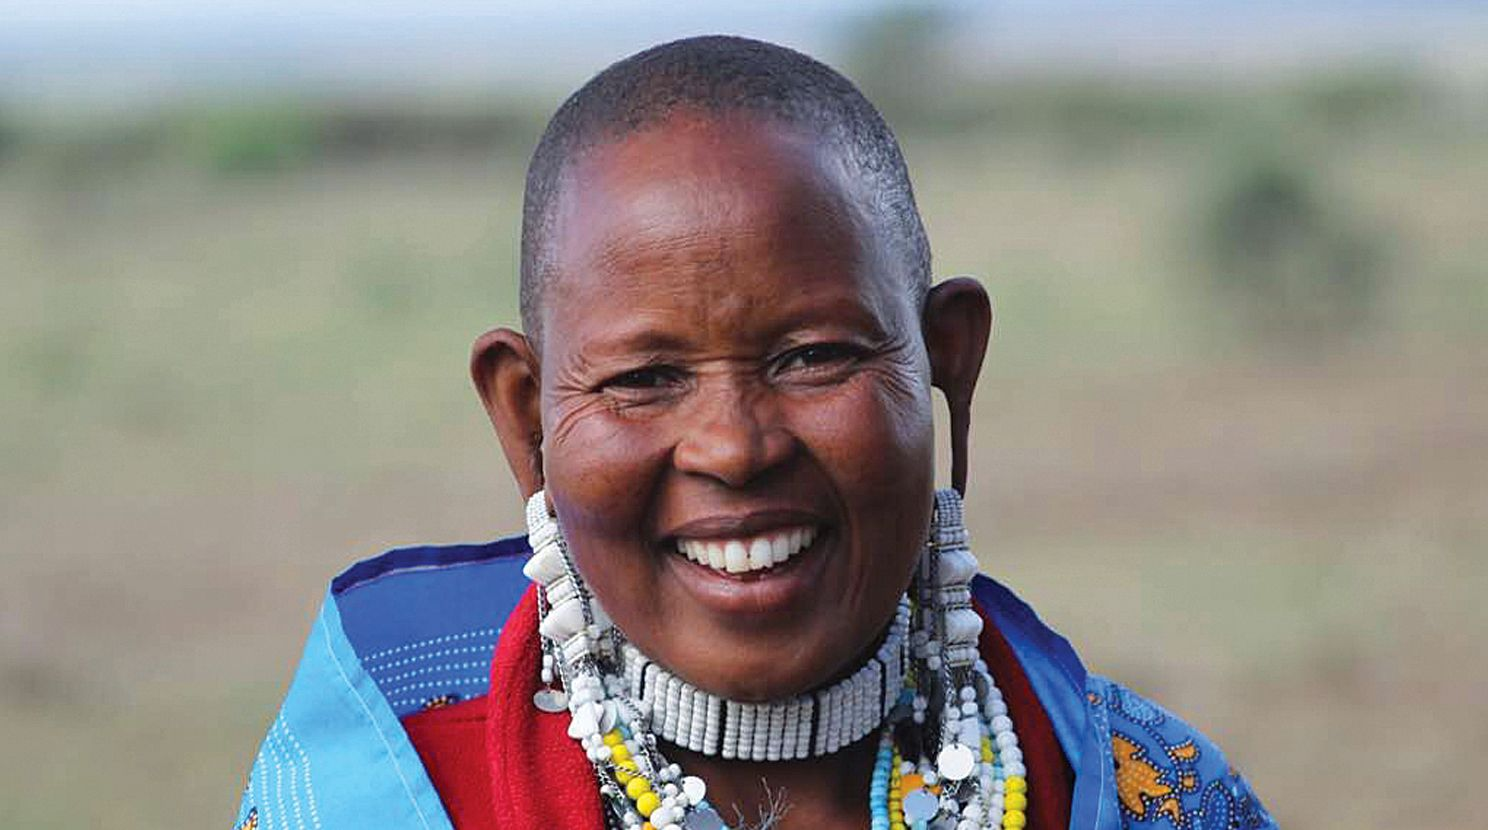 A Maasai woman in northern Tanzania